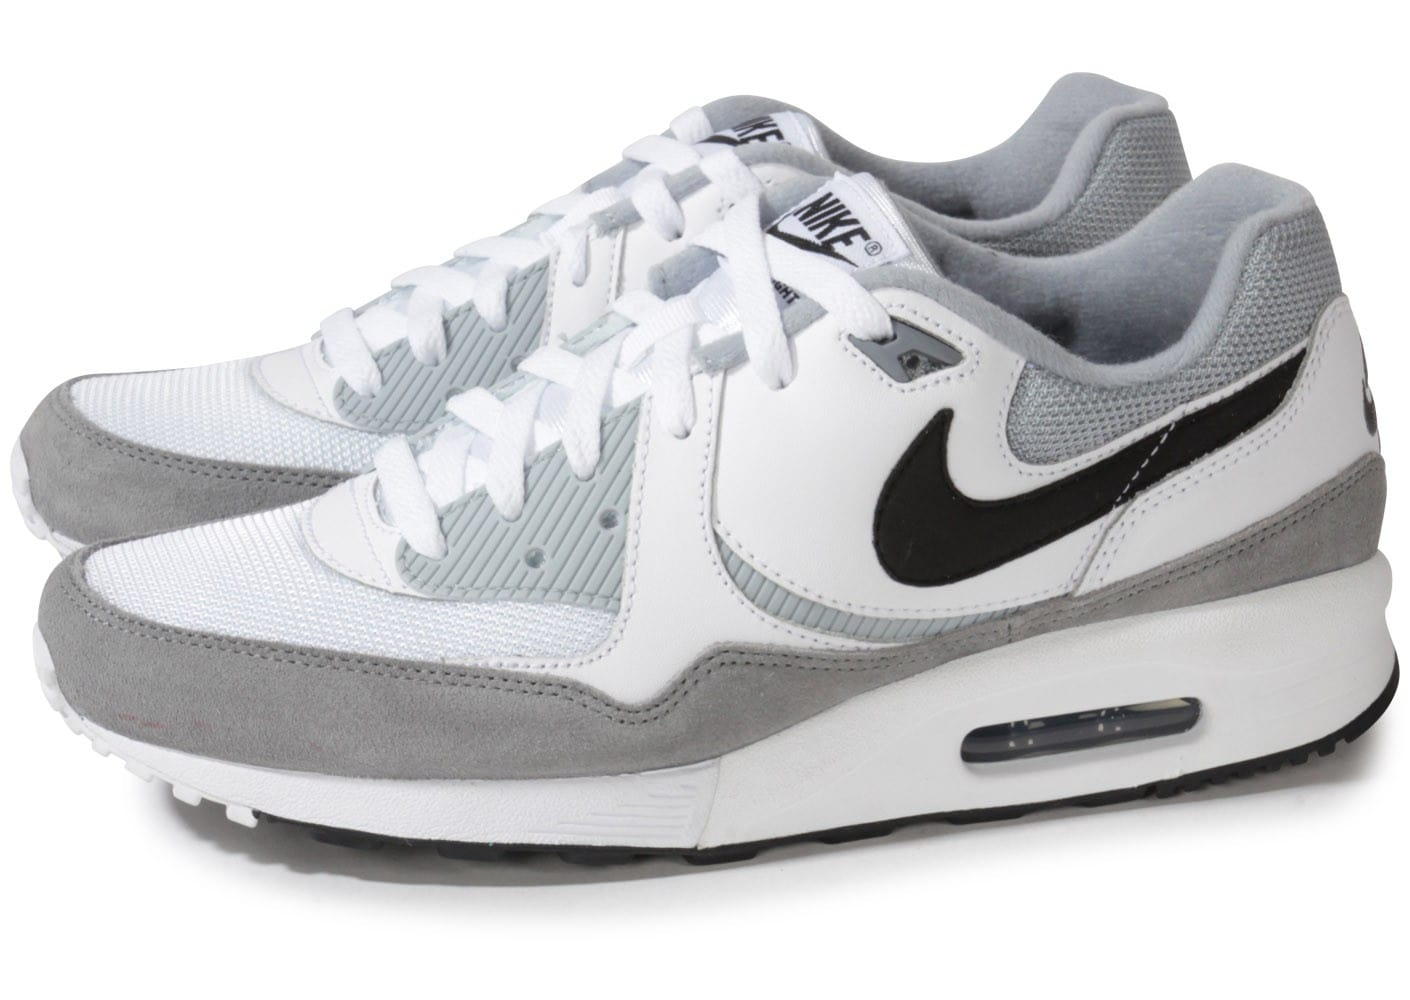 Nike Air Max Light Essential Blanche Chaussures Baskets Homme